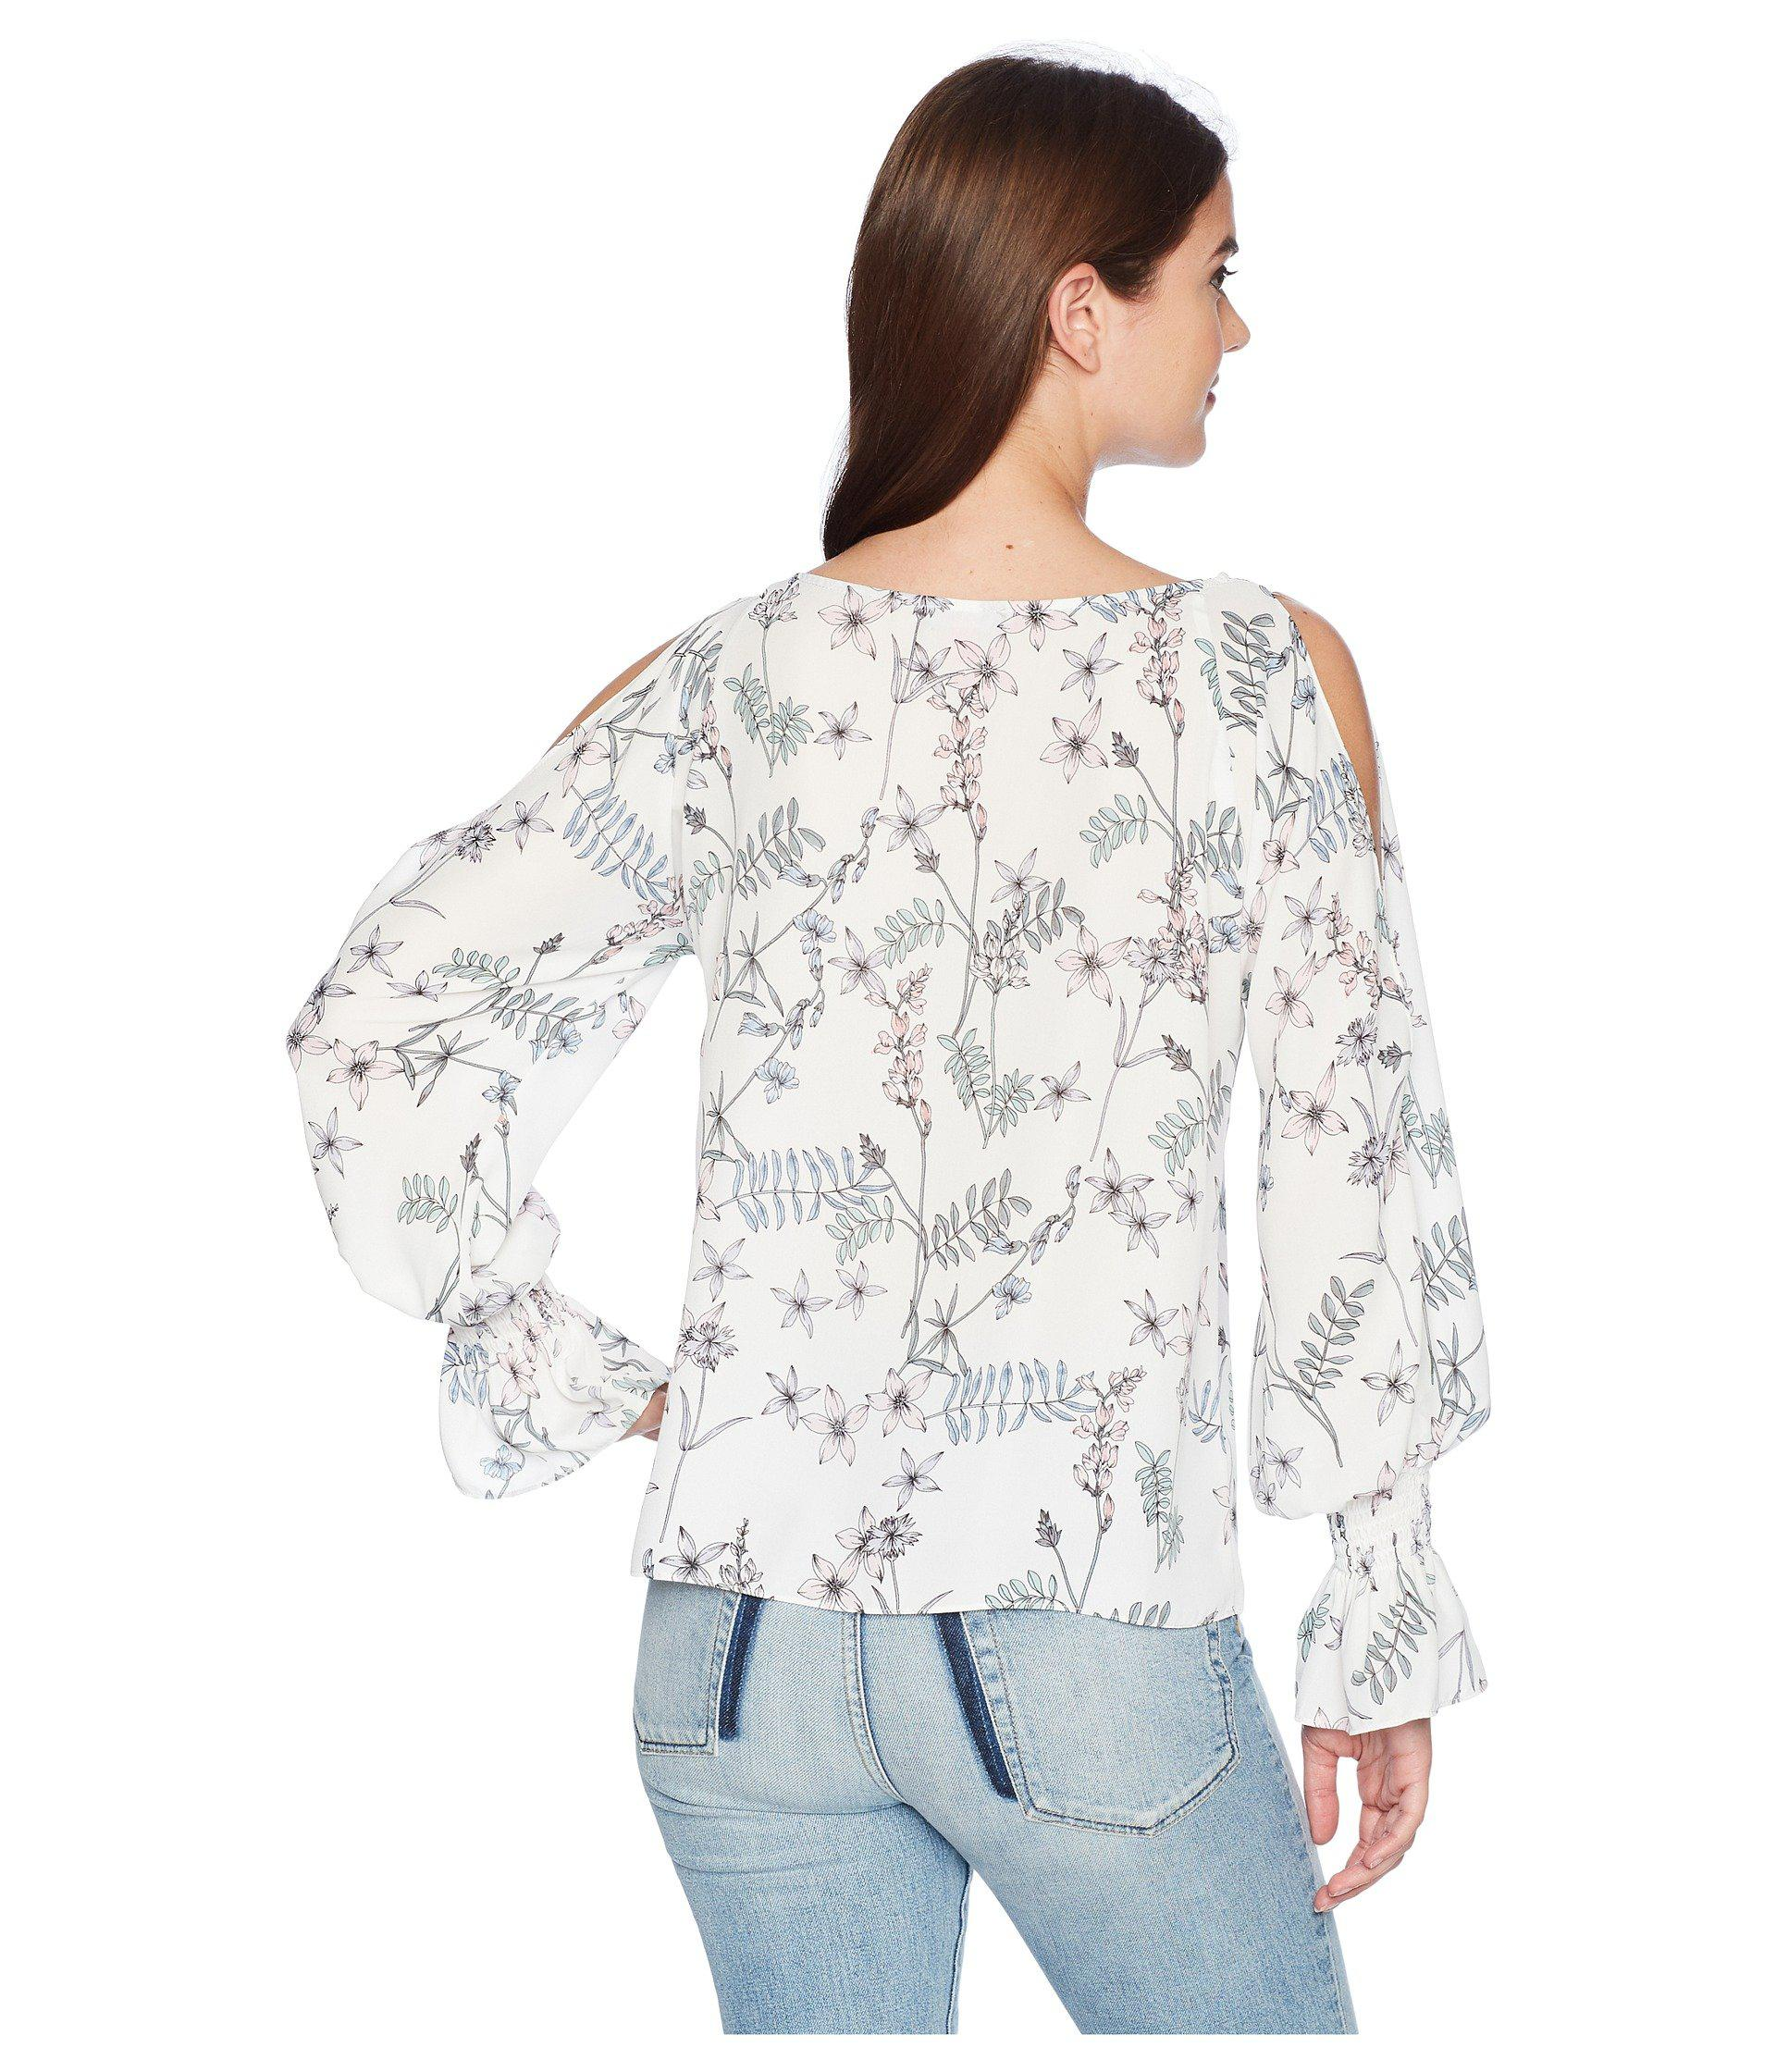 aae461628b7b6 Vince Camuto - White Long Sleeve Flare Cuff Cold Shoulder Botanical Floral  Blouse - Lyst. View fullscreen